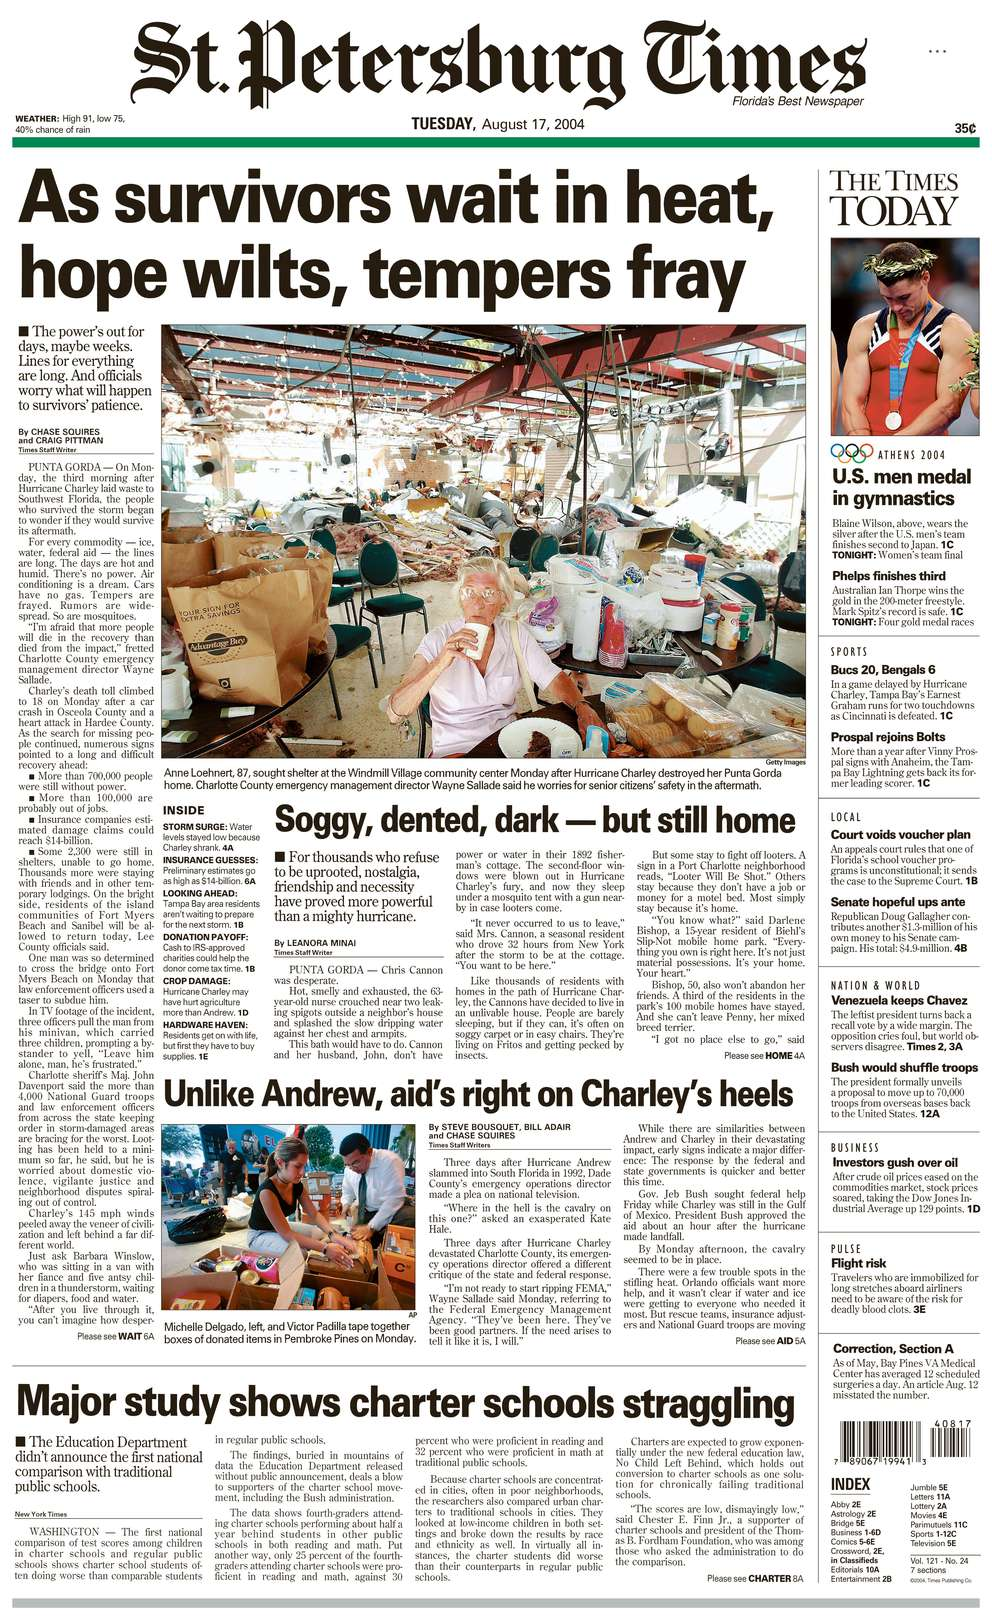 The front page of the St. Petersburg Times for August 17, 2004, featuring coverage of Hurricane Charley.